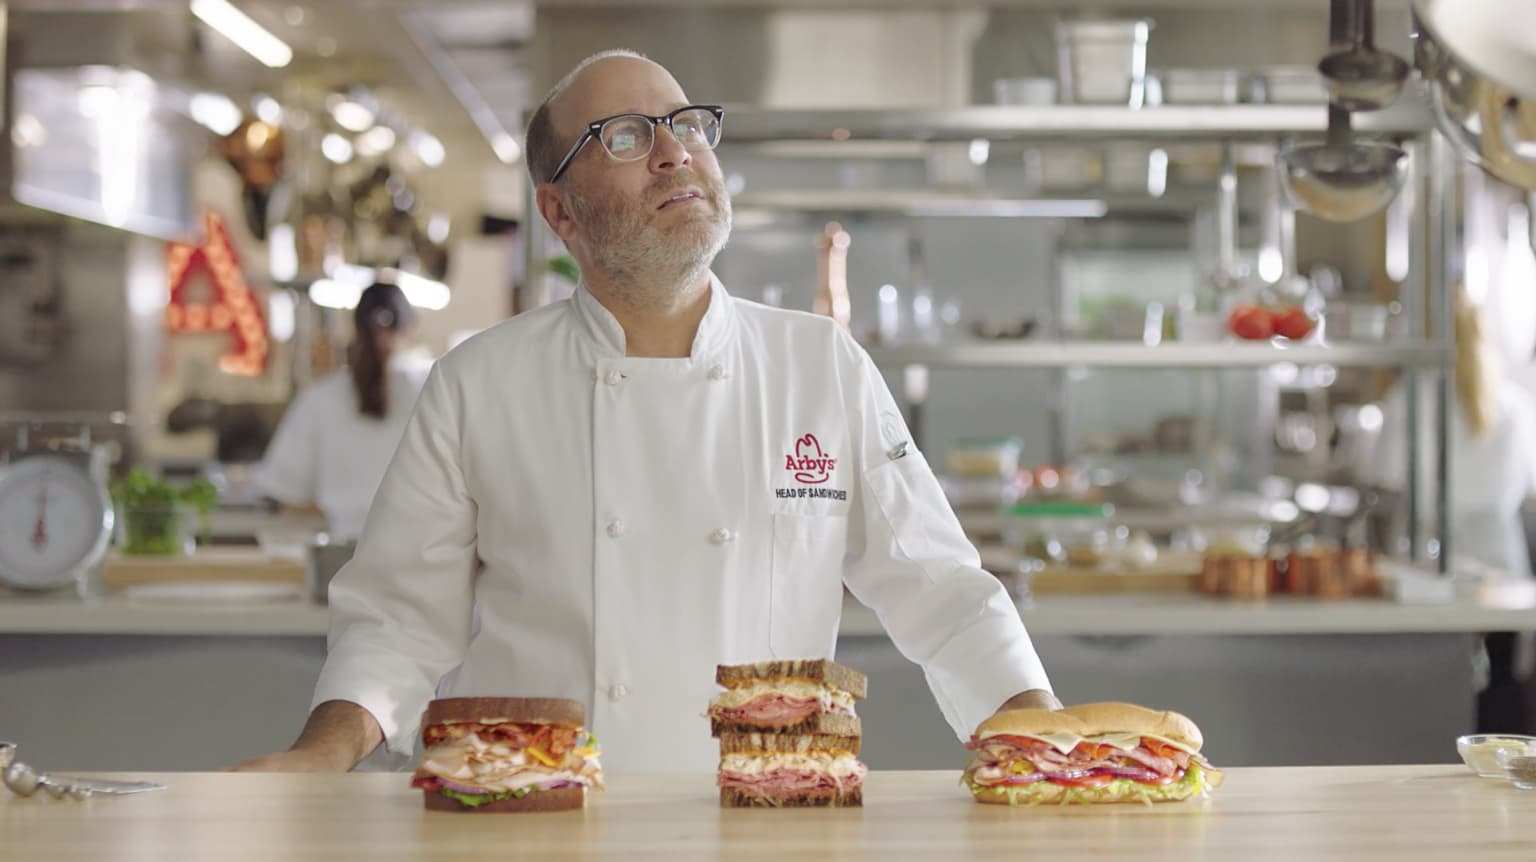 Arby's: Head Of Sandwiches